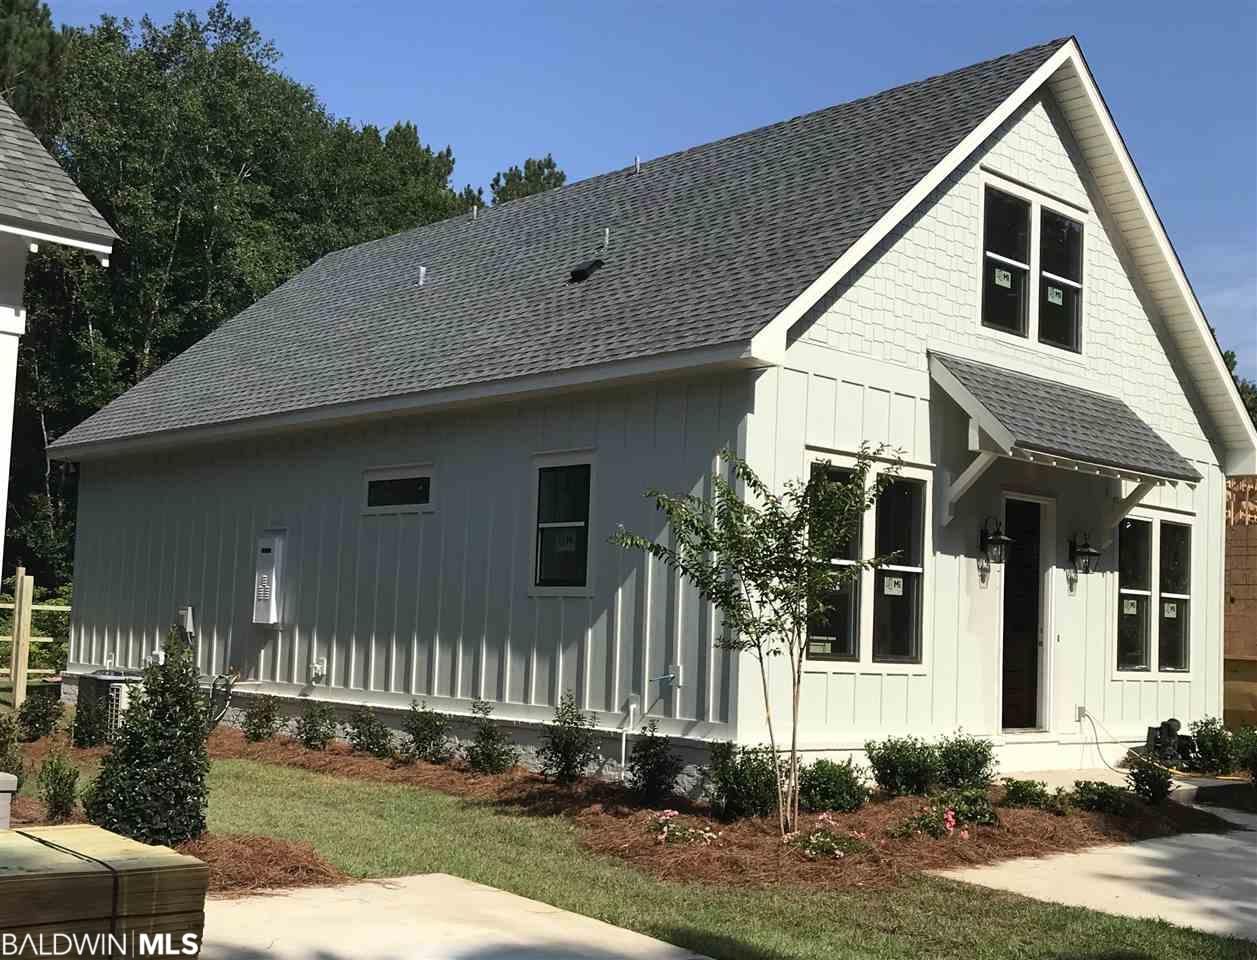 A new home is a clean slate, a chance for new wonderful memories. This home is no exception. You will have peace of mind knowing you have a 1 year builders warranty from custom builder, Ron Cuny of ARK Builders. Since the home is Gold Fortified (able to withstand up to 140 mph winds) when you get your home insurance quote it will totally surprise. This home was designed by ARK to use every inch of space in the most efficient way. Features: open concept | 4 bedrooms | 3 baths | 1865 sq ft | (no garage) parking pad in front with a detached entertainment area (covered) in back with storage | Gold Fortified | hardwood/tile/carpet (upstairs) | master en-suite downstairs | shake style cabinets | stainless steel appliances | gas log fireplace with gas starter | master bath has water closet, 2 walk in closets, dual vanities, walk in shower | bedroom 4 could be a loft | extra walk in storage (heated & cooled) upstairs + decking in attic for storage | fenced | irrigation system (front and back yard) | Fairhope schools | less that 1 mile from town. You will love the beauty and peace of mind with a new custom home…and all under $400,000 in downtown Fairhope! (Listing agent is related to the builder (seller).